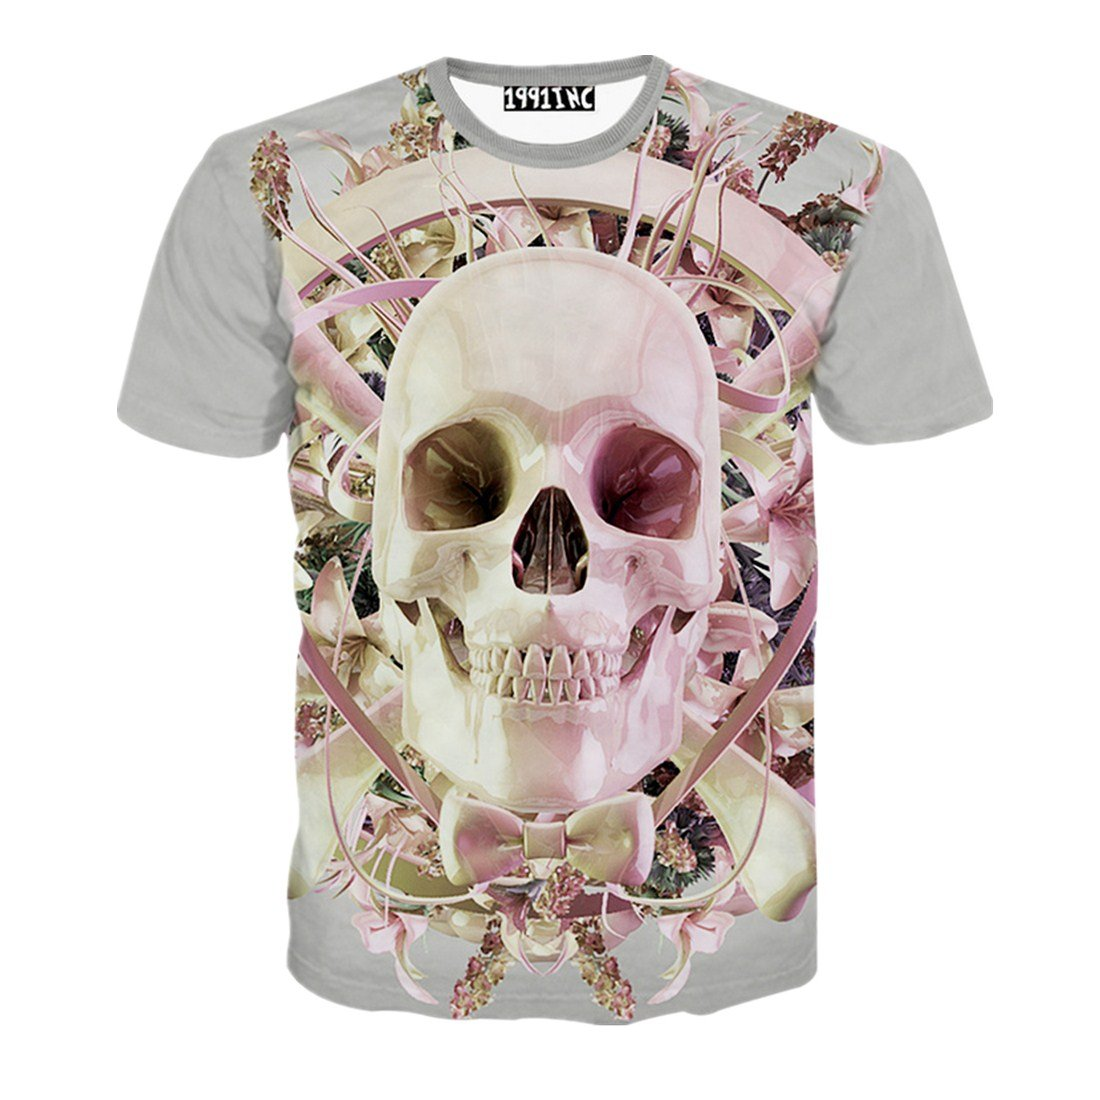 Men's Fashion Pirate Flag Skull Print 3D T-Shirts